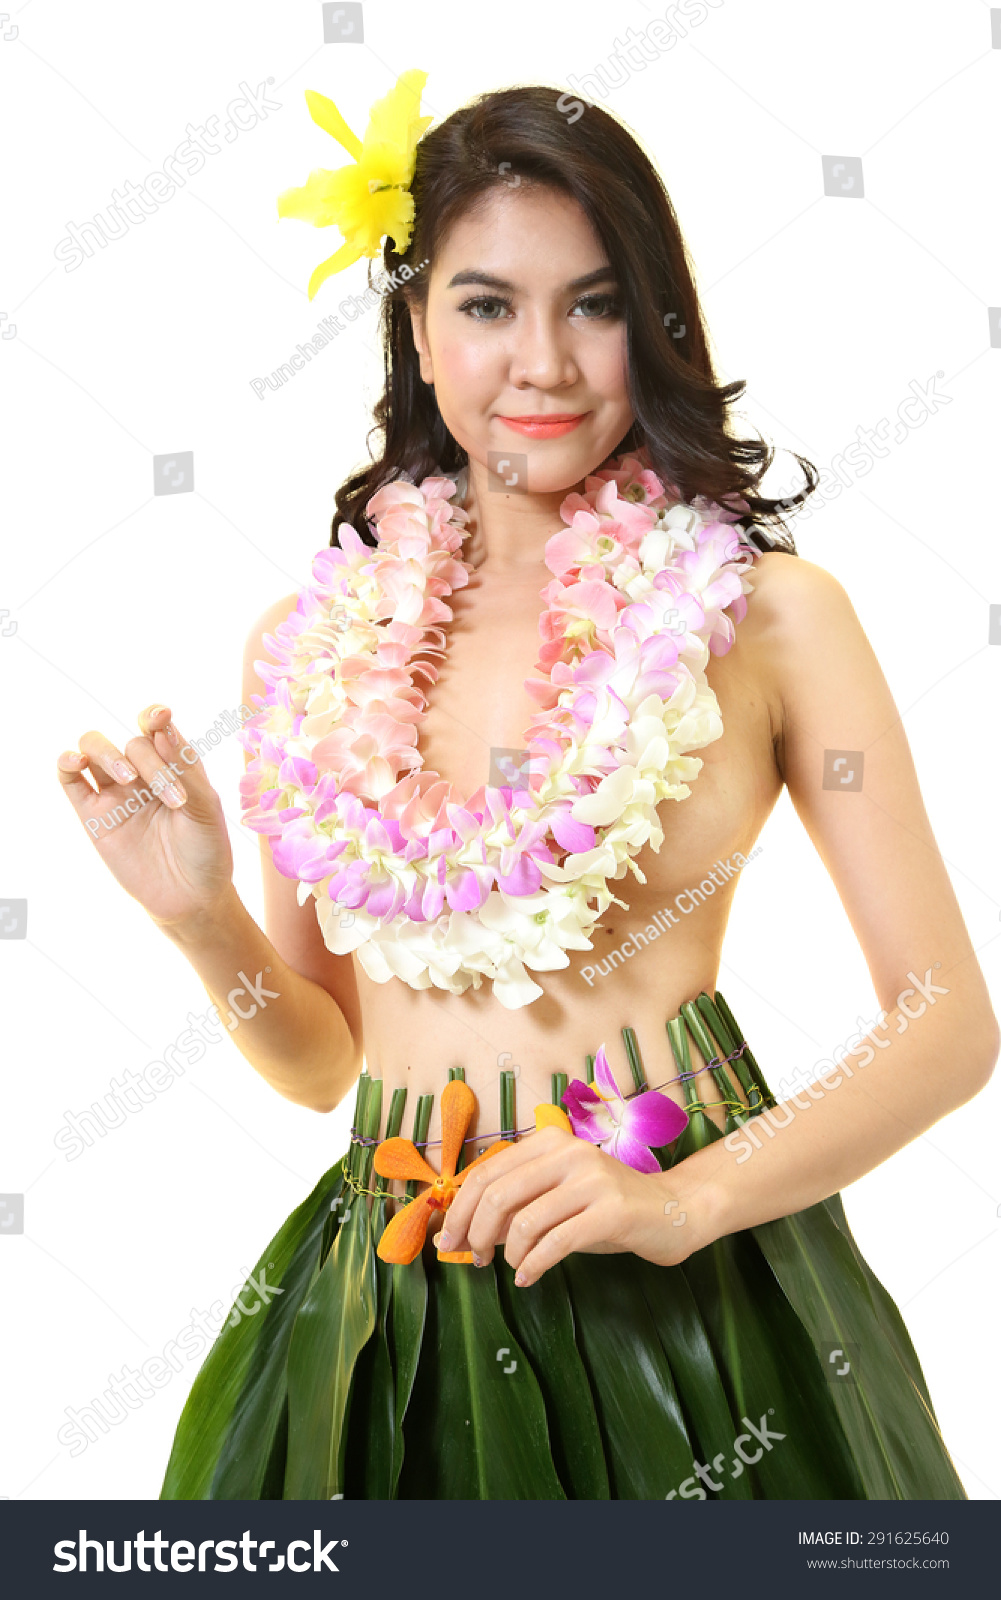 Beautiful woman dress hawaiian style flower stock photo edit now beautiful woman dress in hawaiian style with flower lei garland of white orchids on white background izmirmasajfo